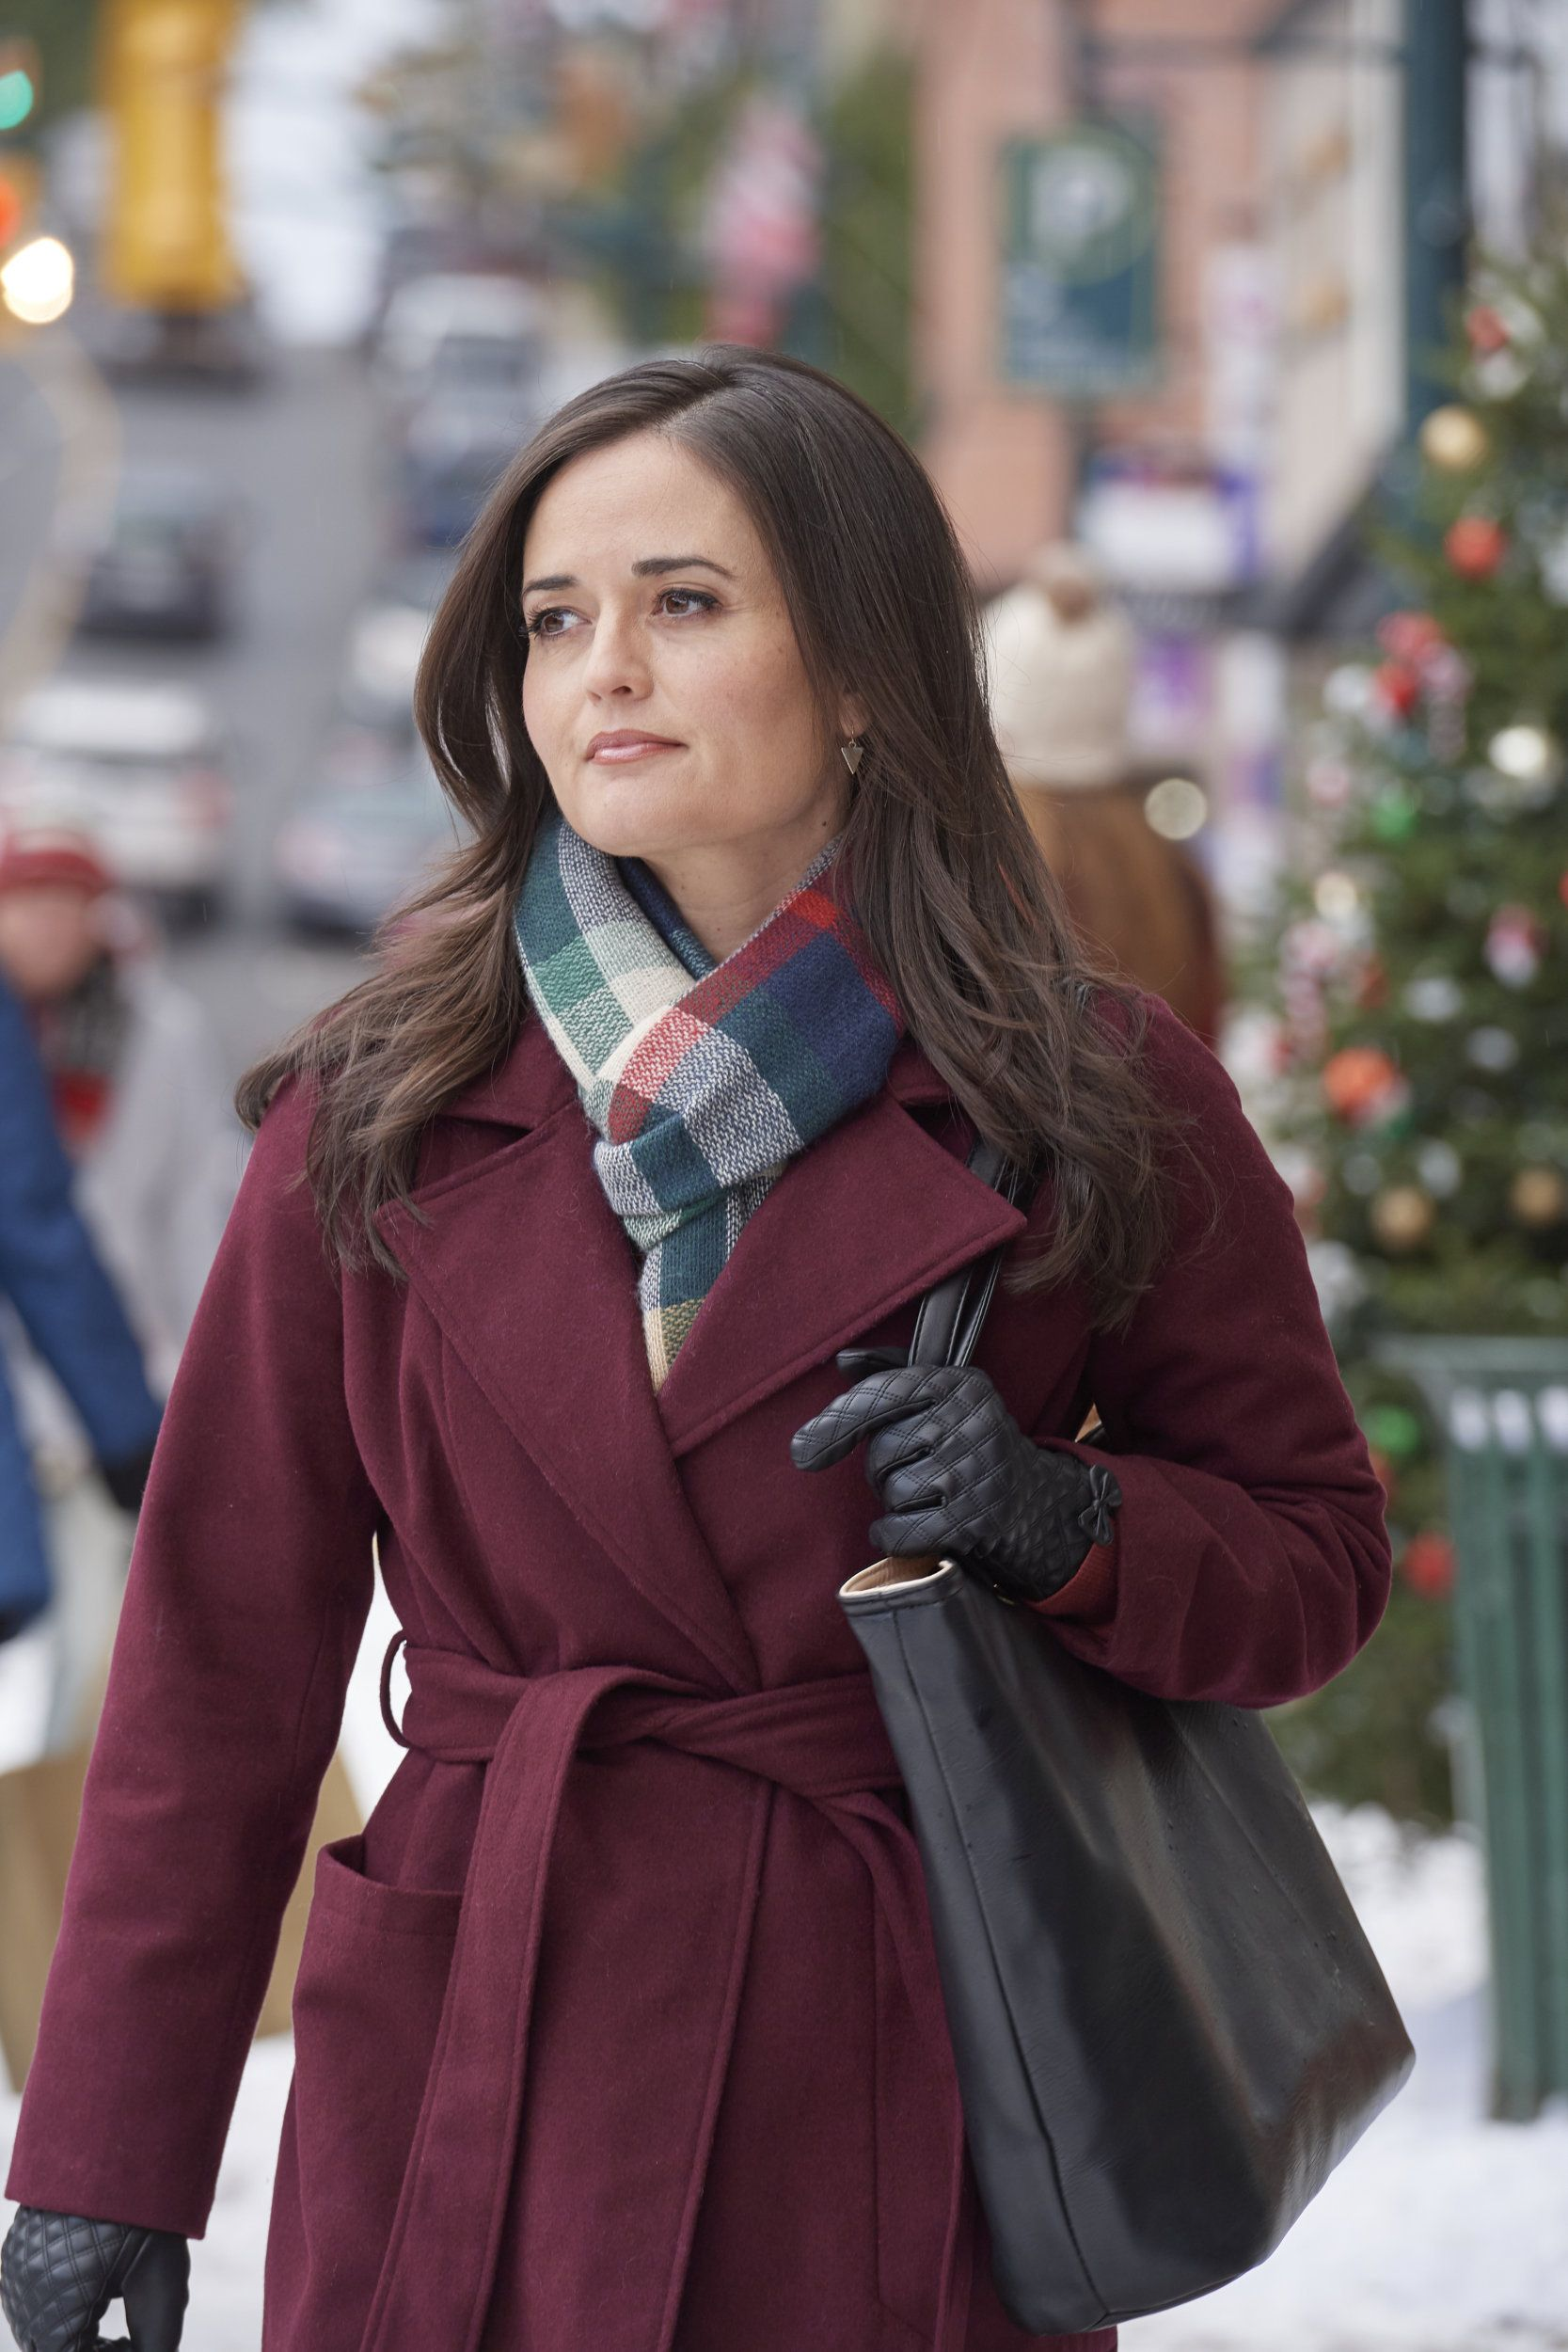 Check out the photo gallery from the Hallmark Movies